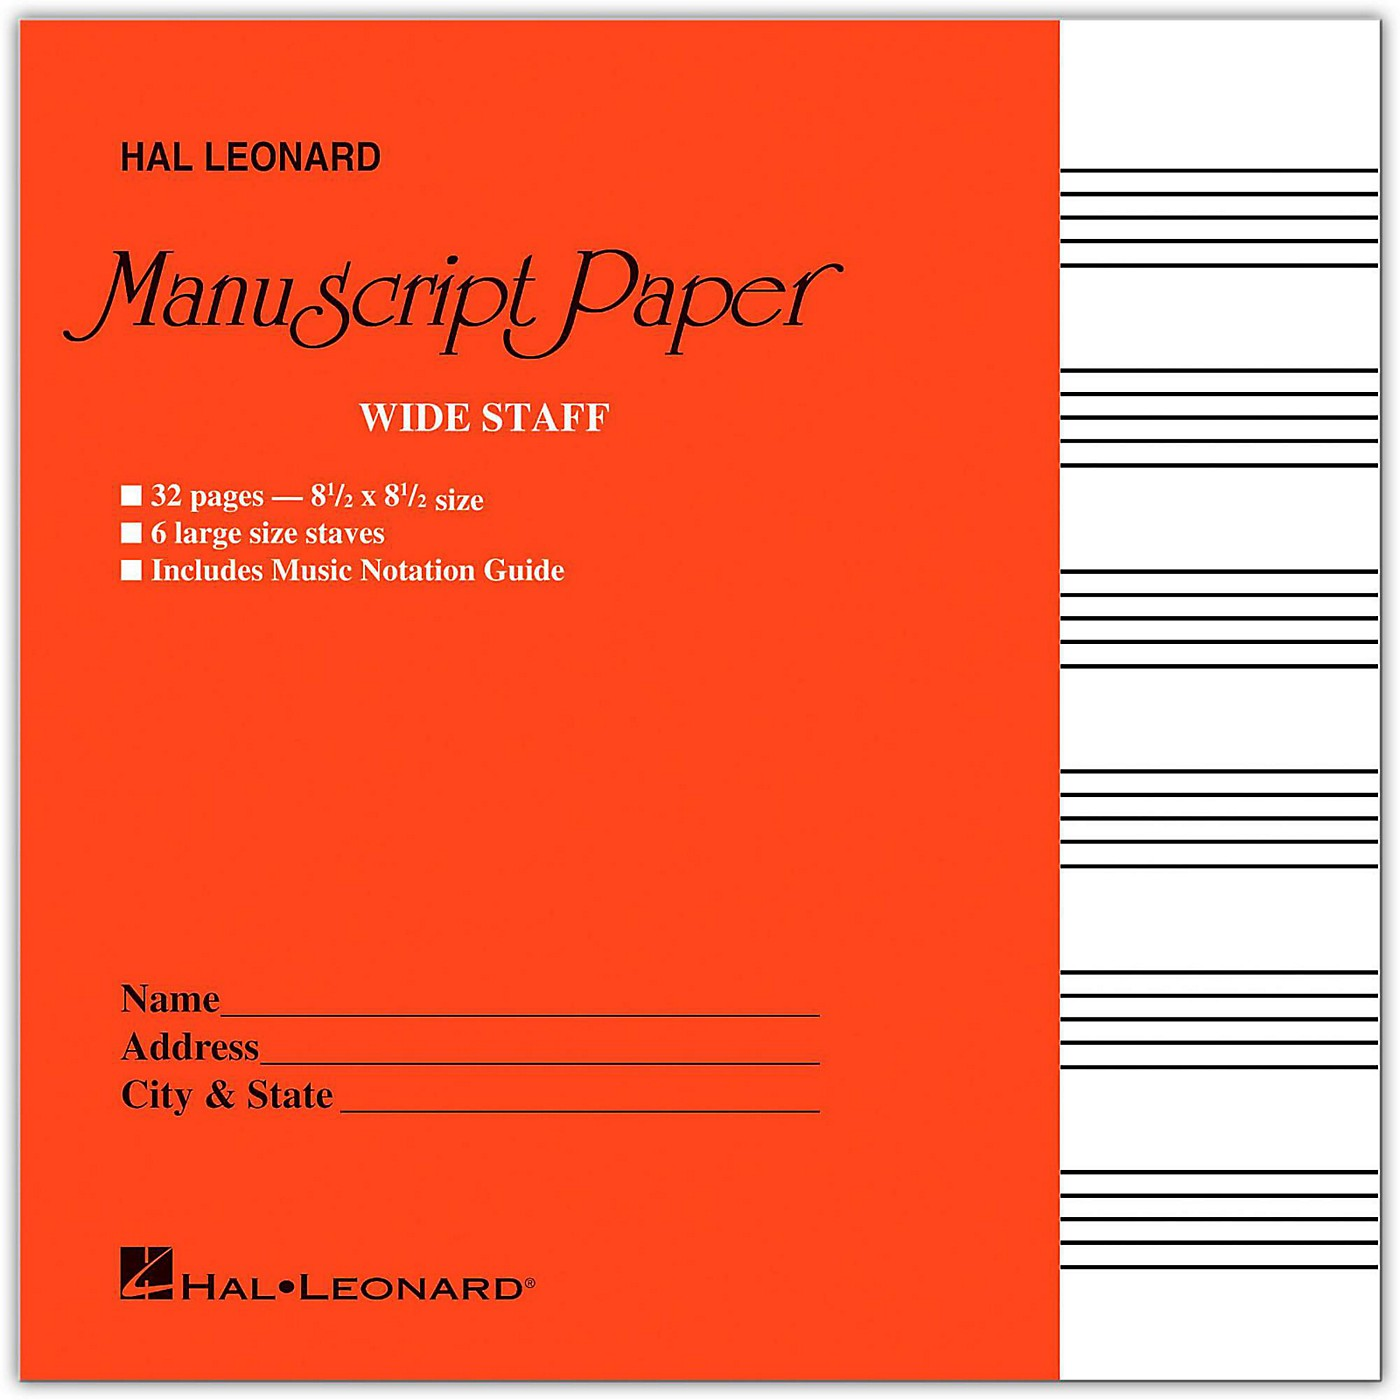 Hal Leonard Wide Staff Manuscript Paper (Red Cover) thumbnail